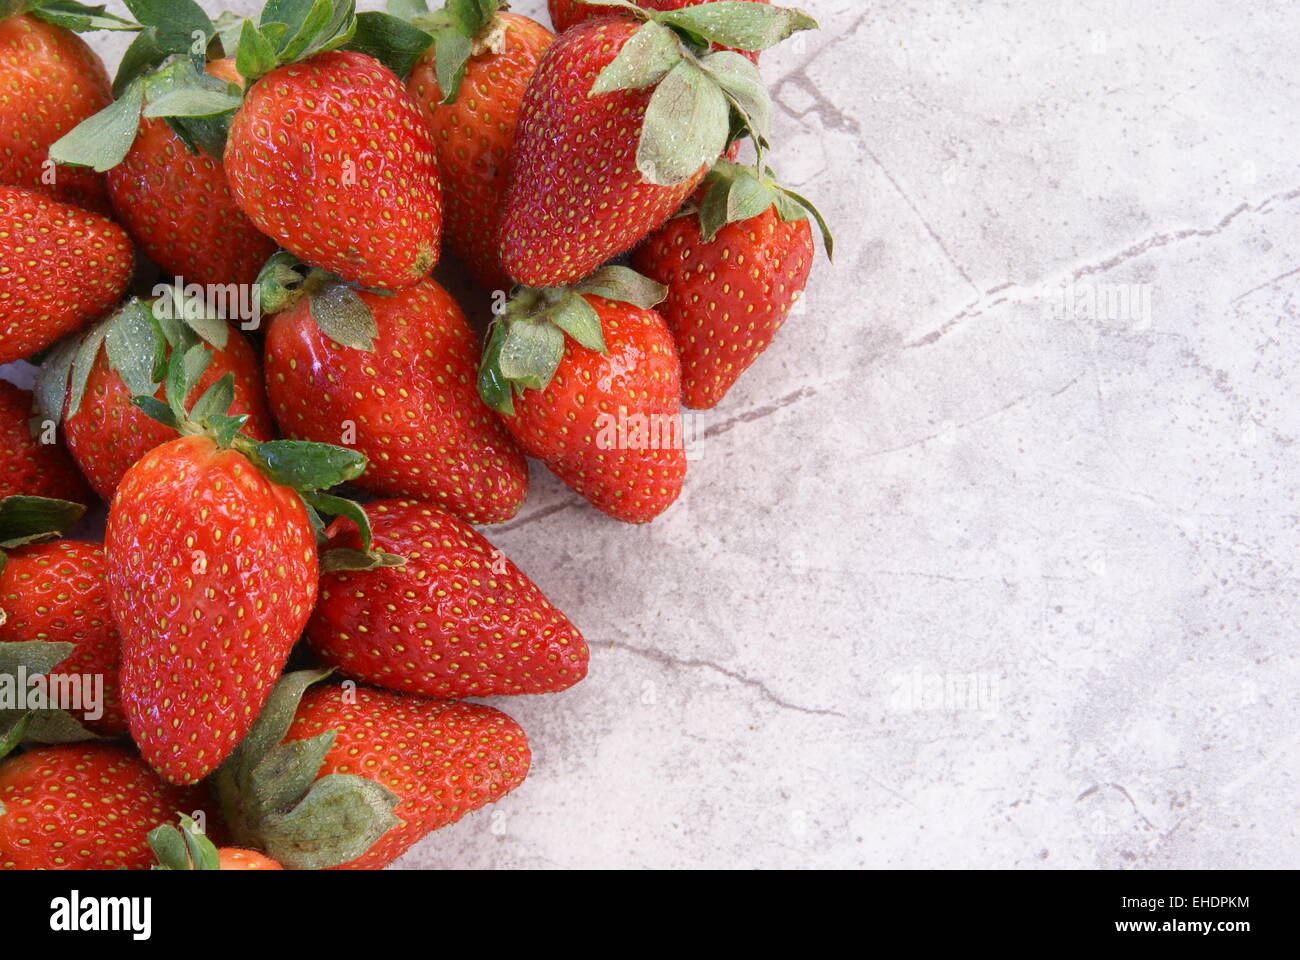 Strawberries are piled to the left and top on a marble counter or tabletop with a top down view and plenty of room - Stock Image